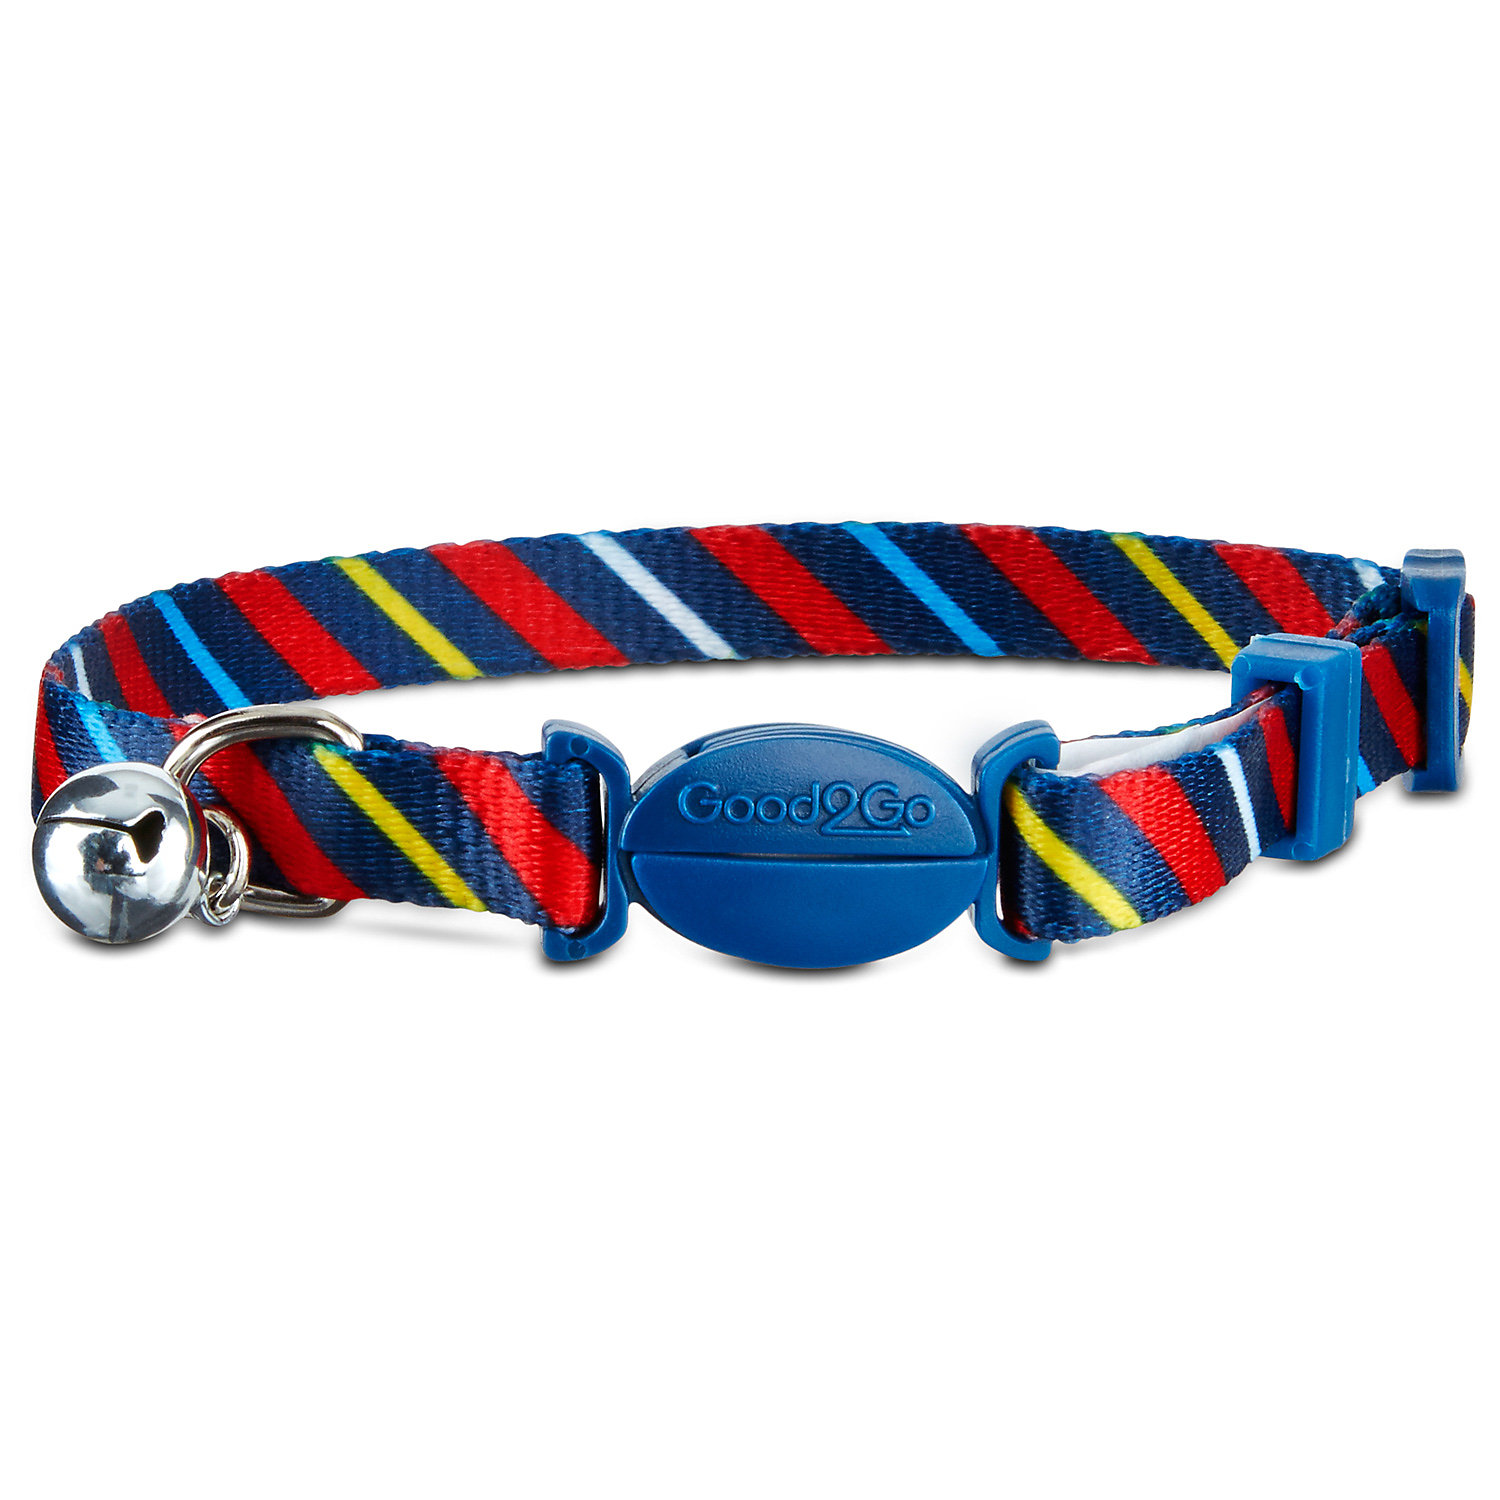 Good2go Tie Striped Breakaway Cat Collar For Necks 8 12 One Size Fits All Multi Color